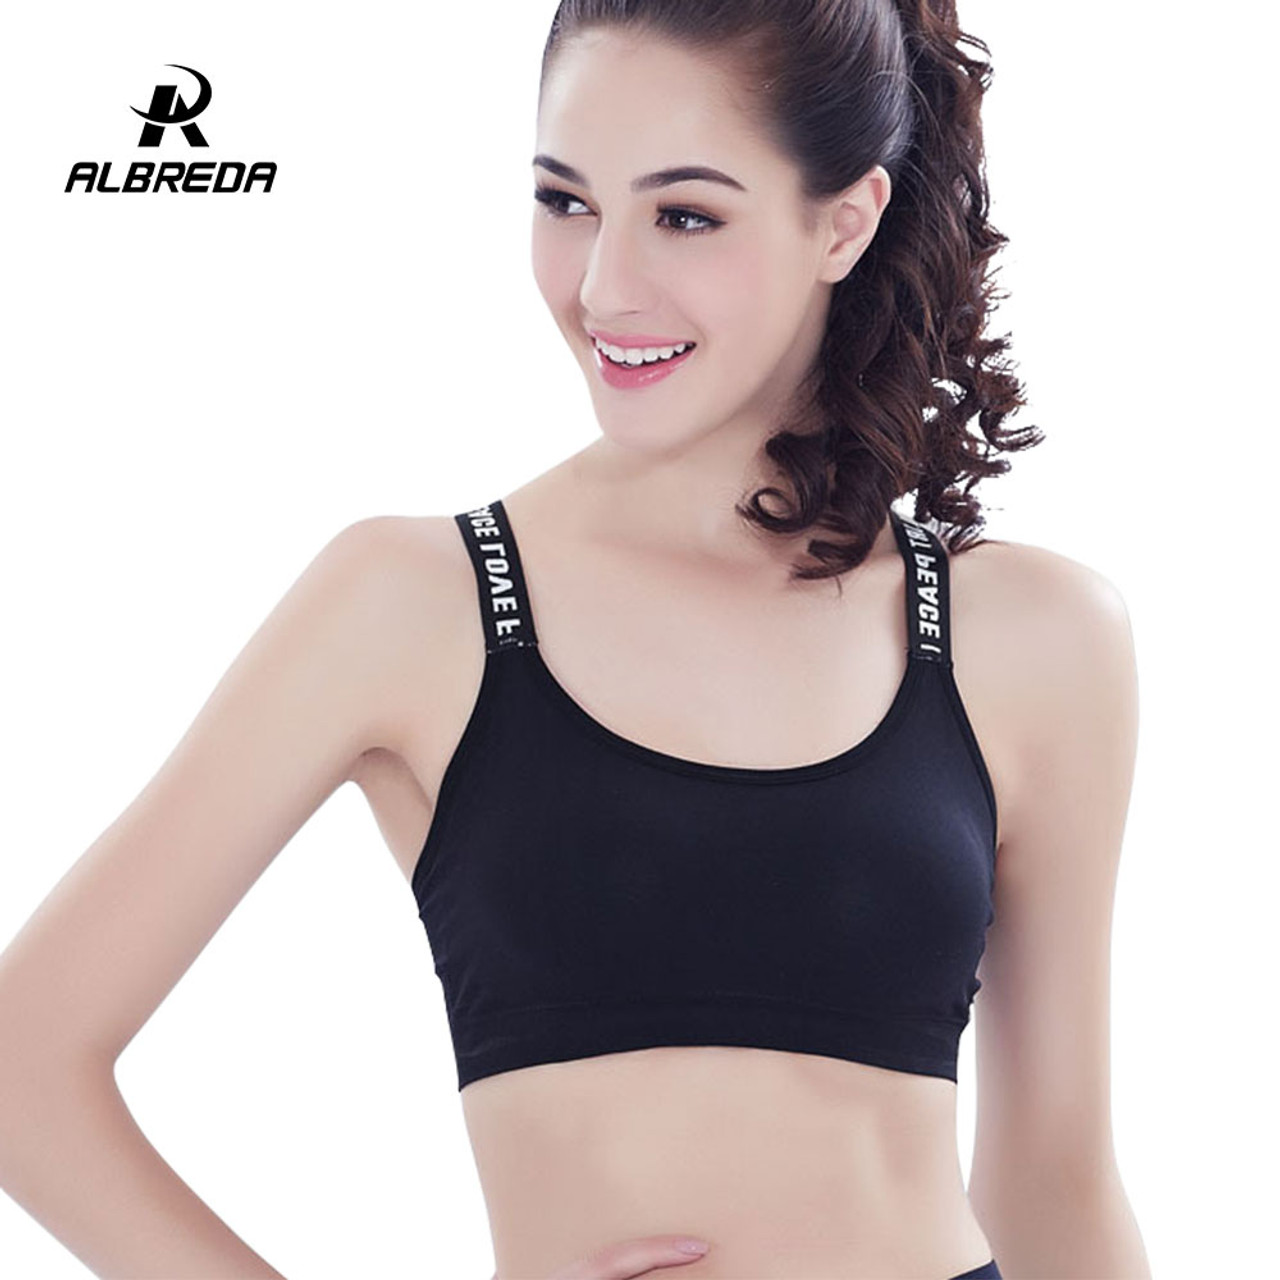 5f29f5775bf74 ... ALBREDA New Style Fitness Women Sports Bra Yoga Padded Crop Top Gym  Workout Sexy bras Running ...